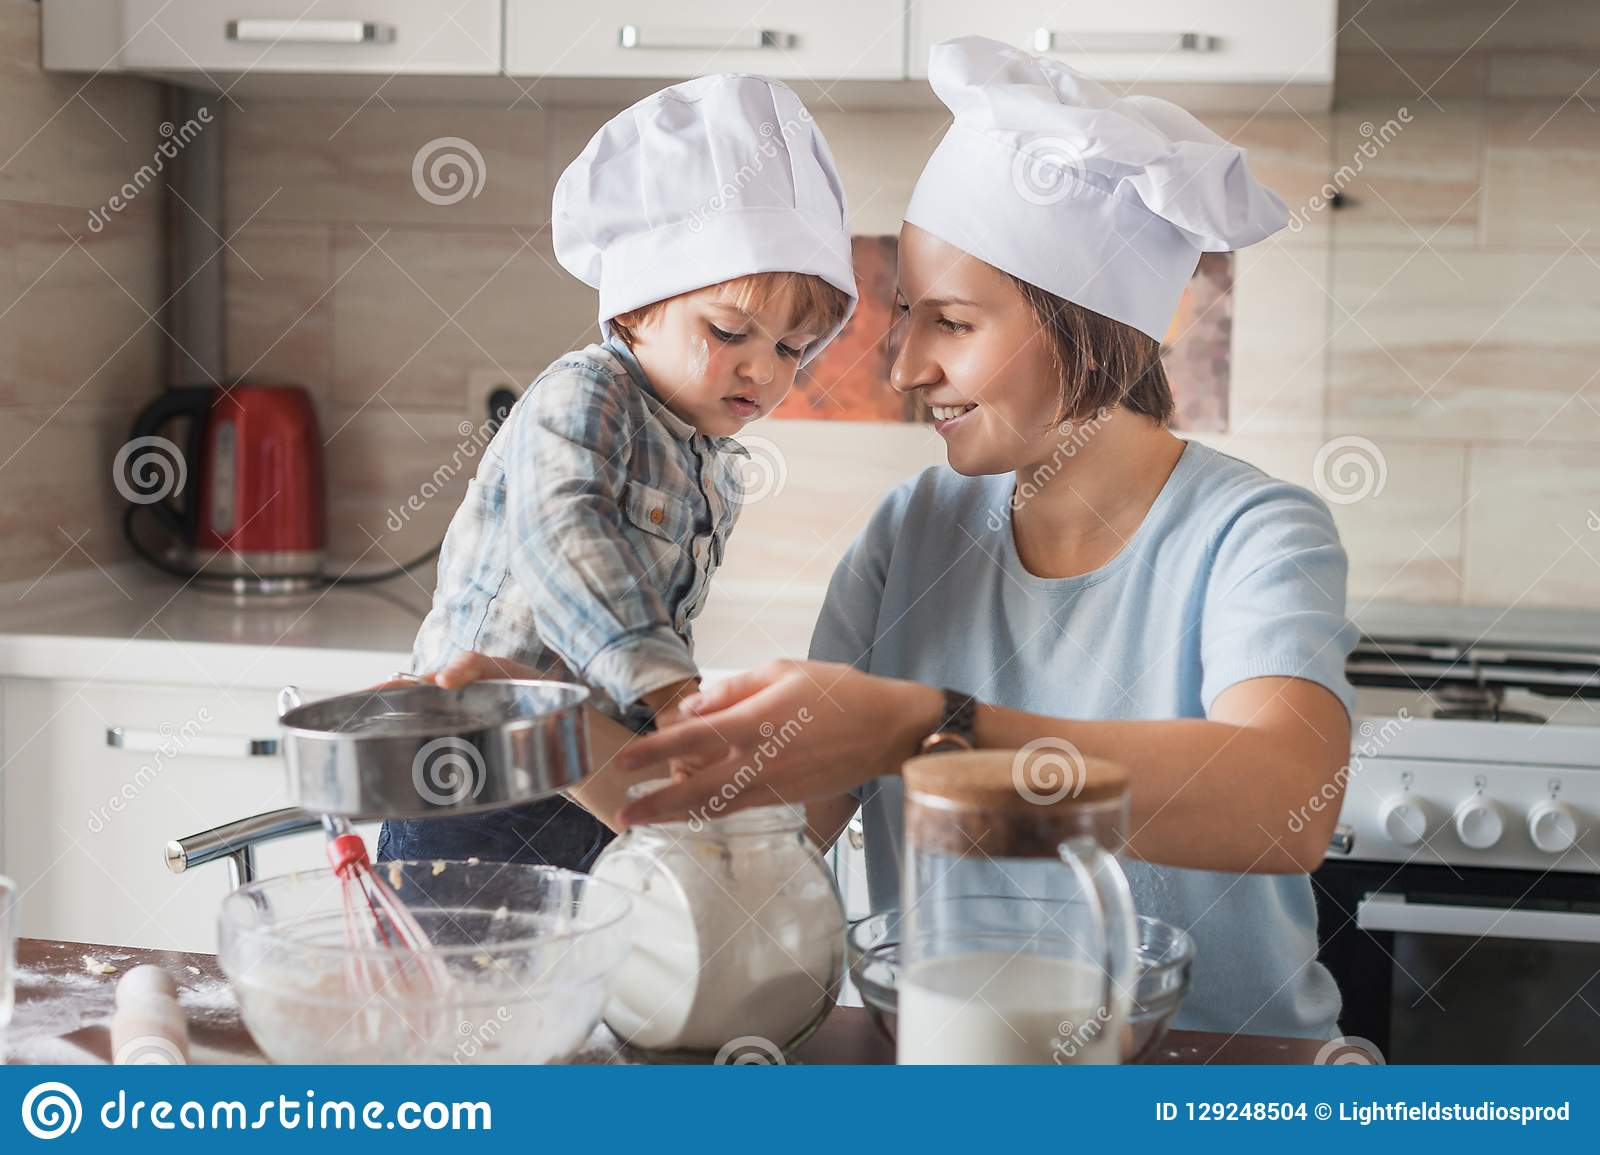 happy mother and adorable child in chef hats preparing dough on messy table